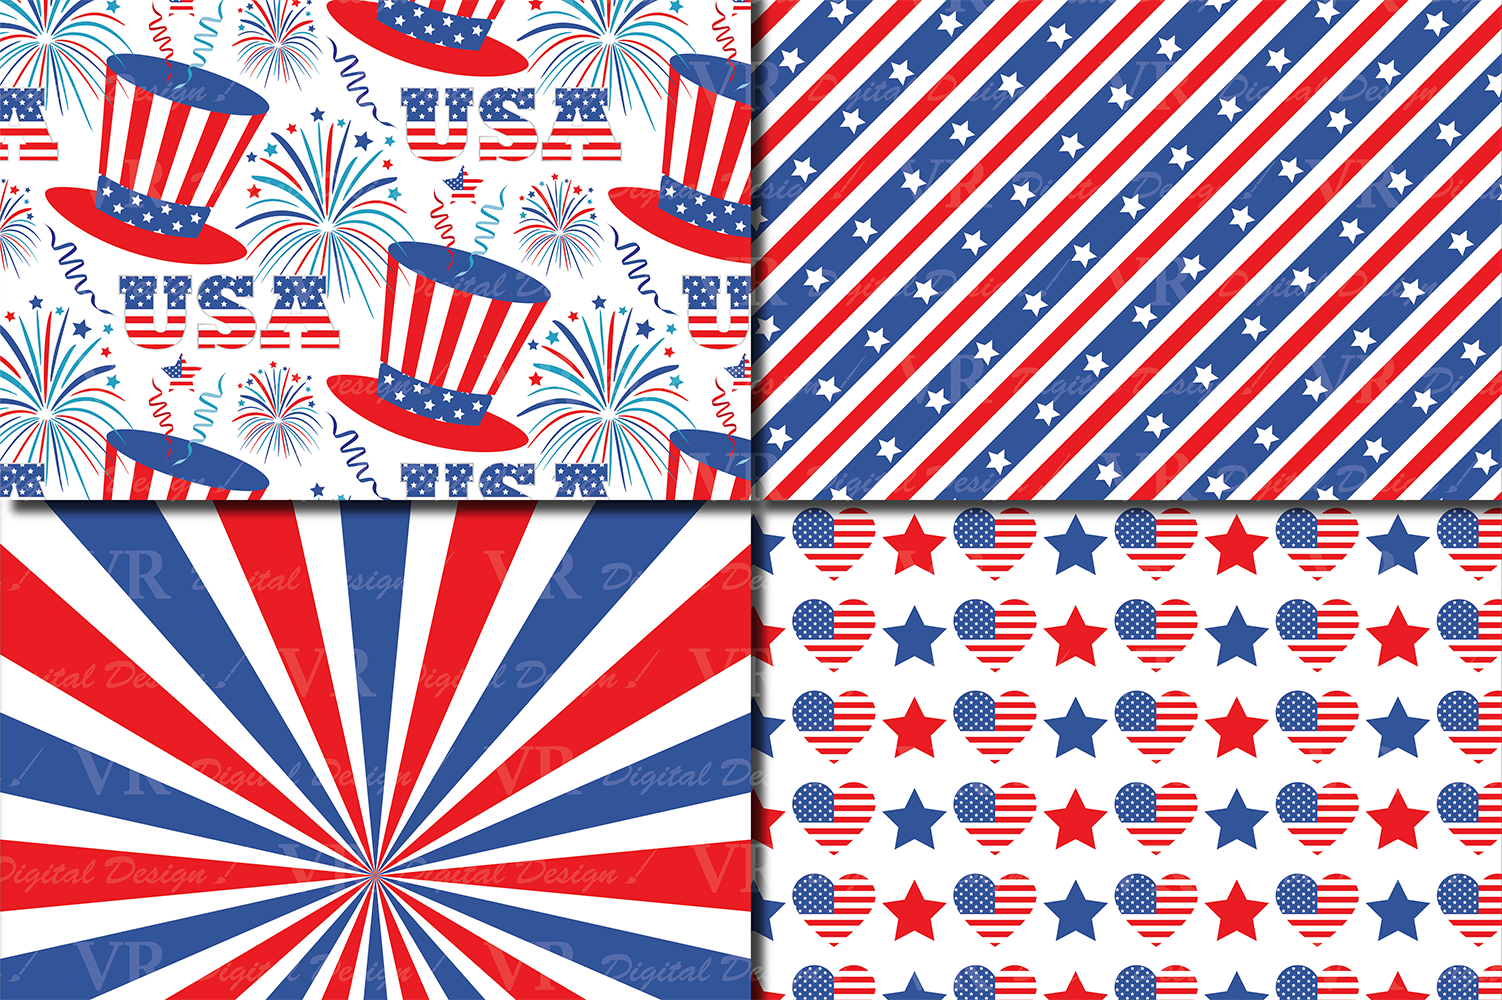 4th of July Digital Paper / USA Independence Day backgrounds / American patriotic Scrapbook paper example image 3